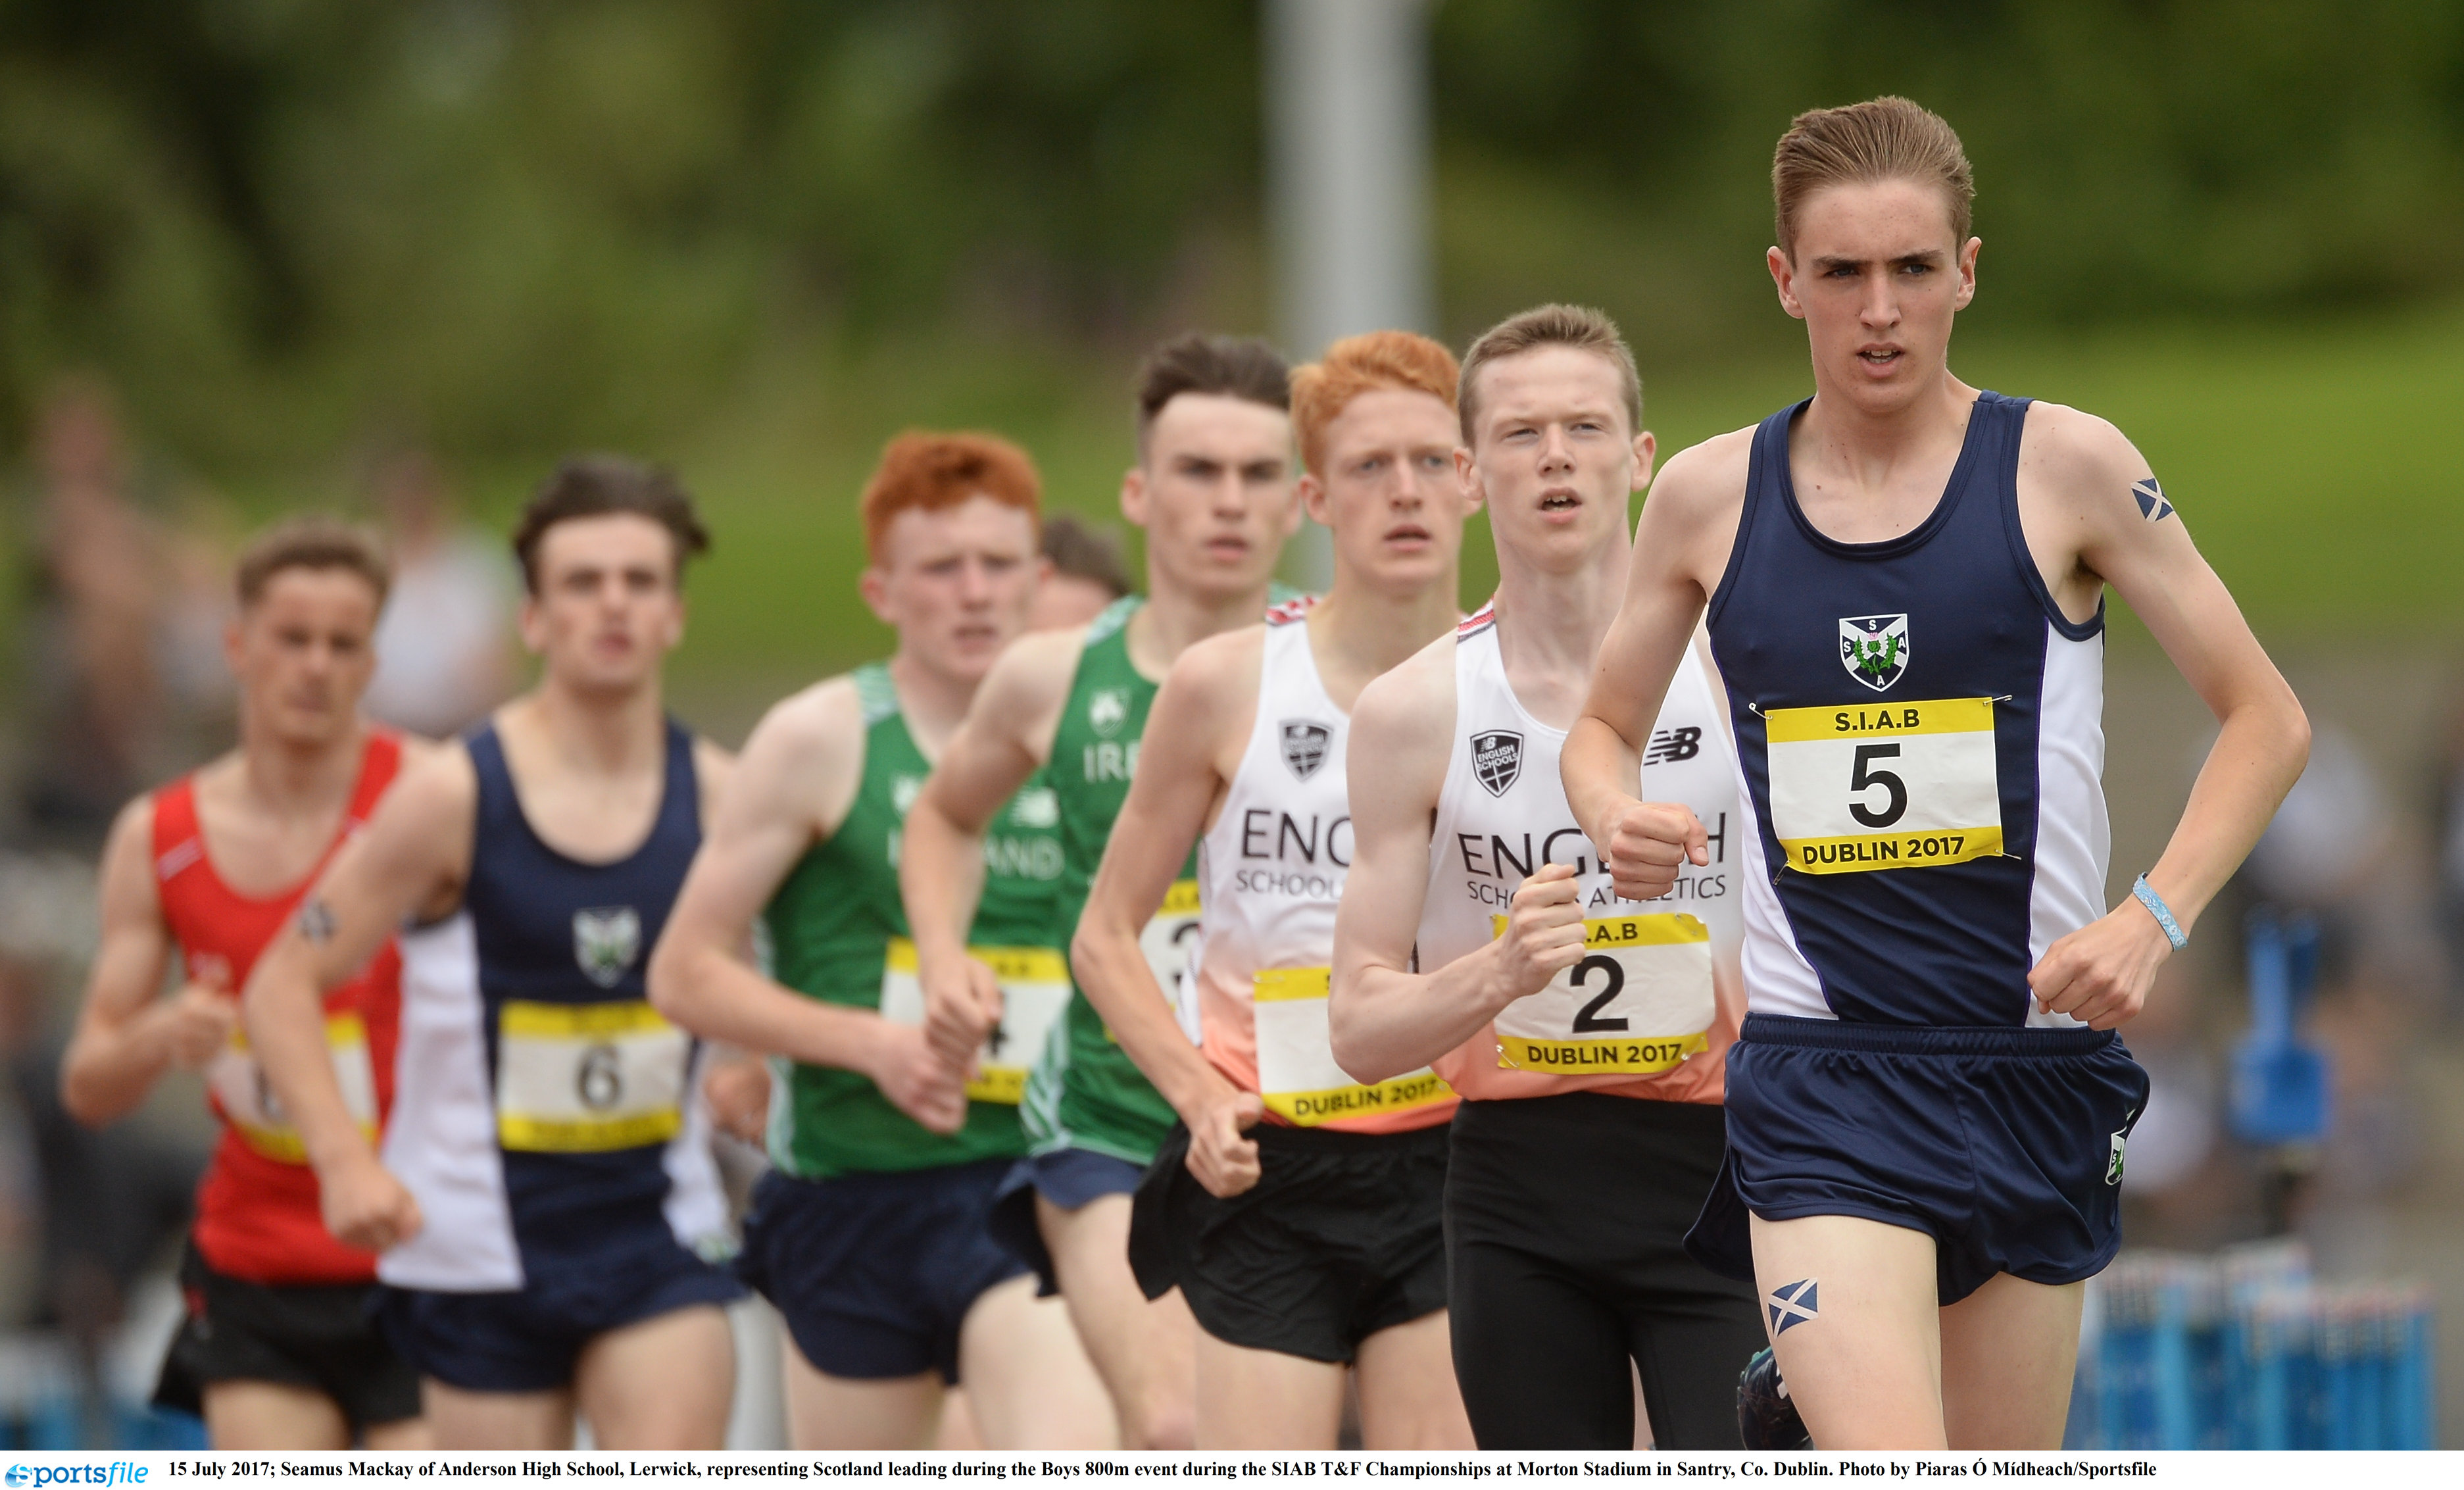 Irish Schools Select strong International Team set to compete in Derbyshire